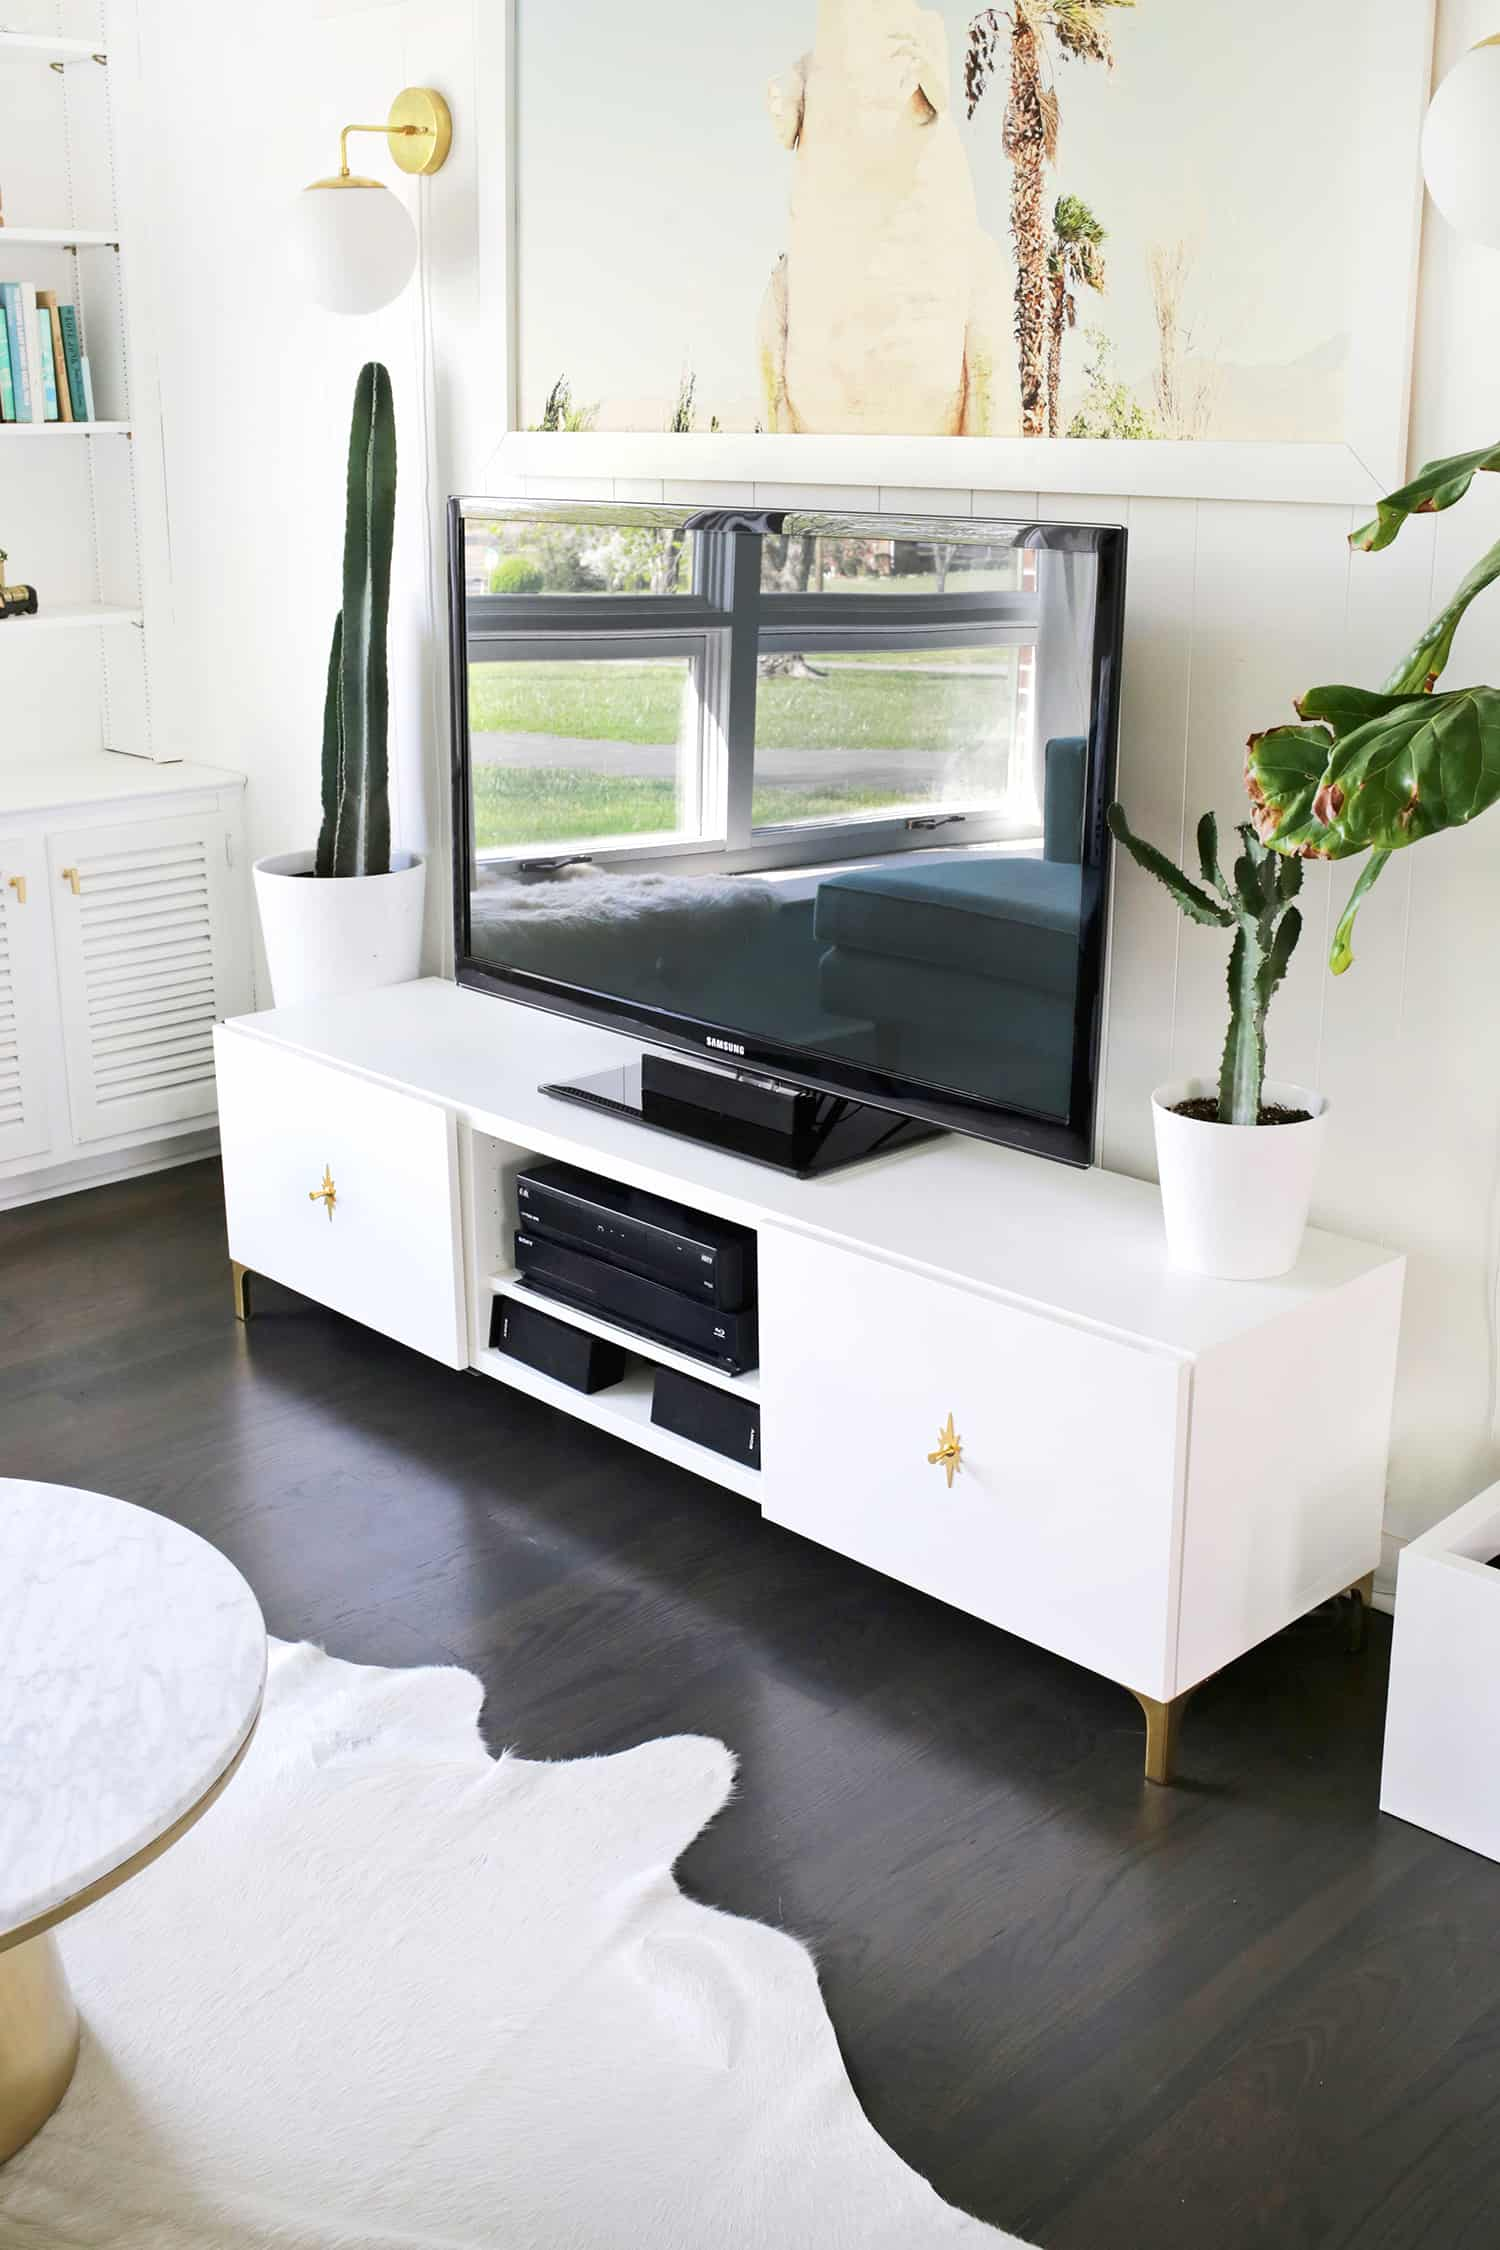 15 Crafts You Can Do While Watching TV